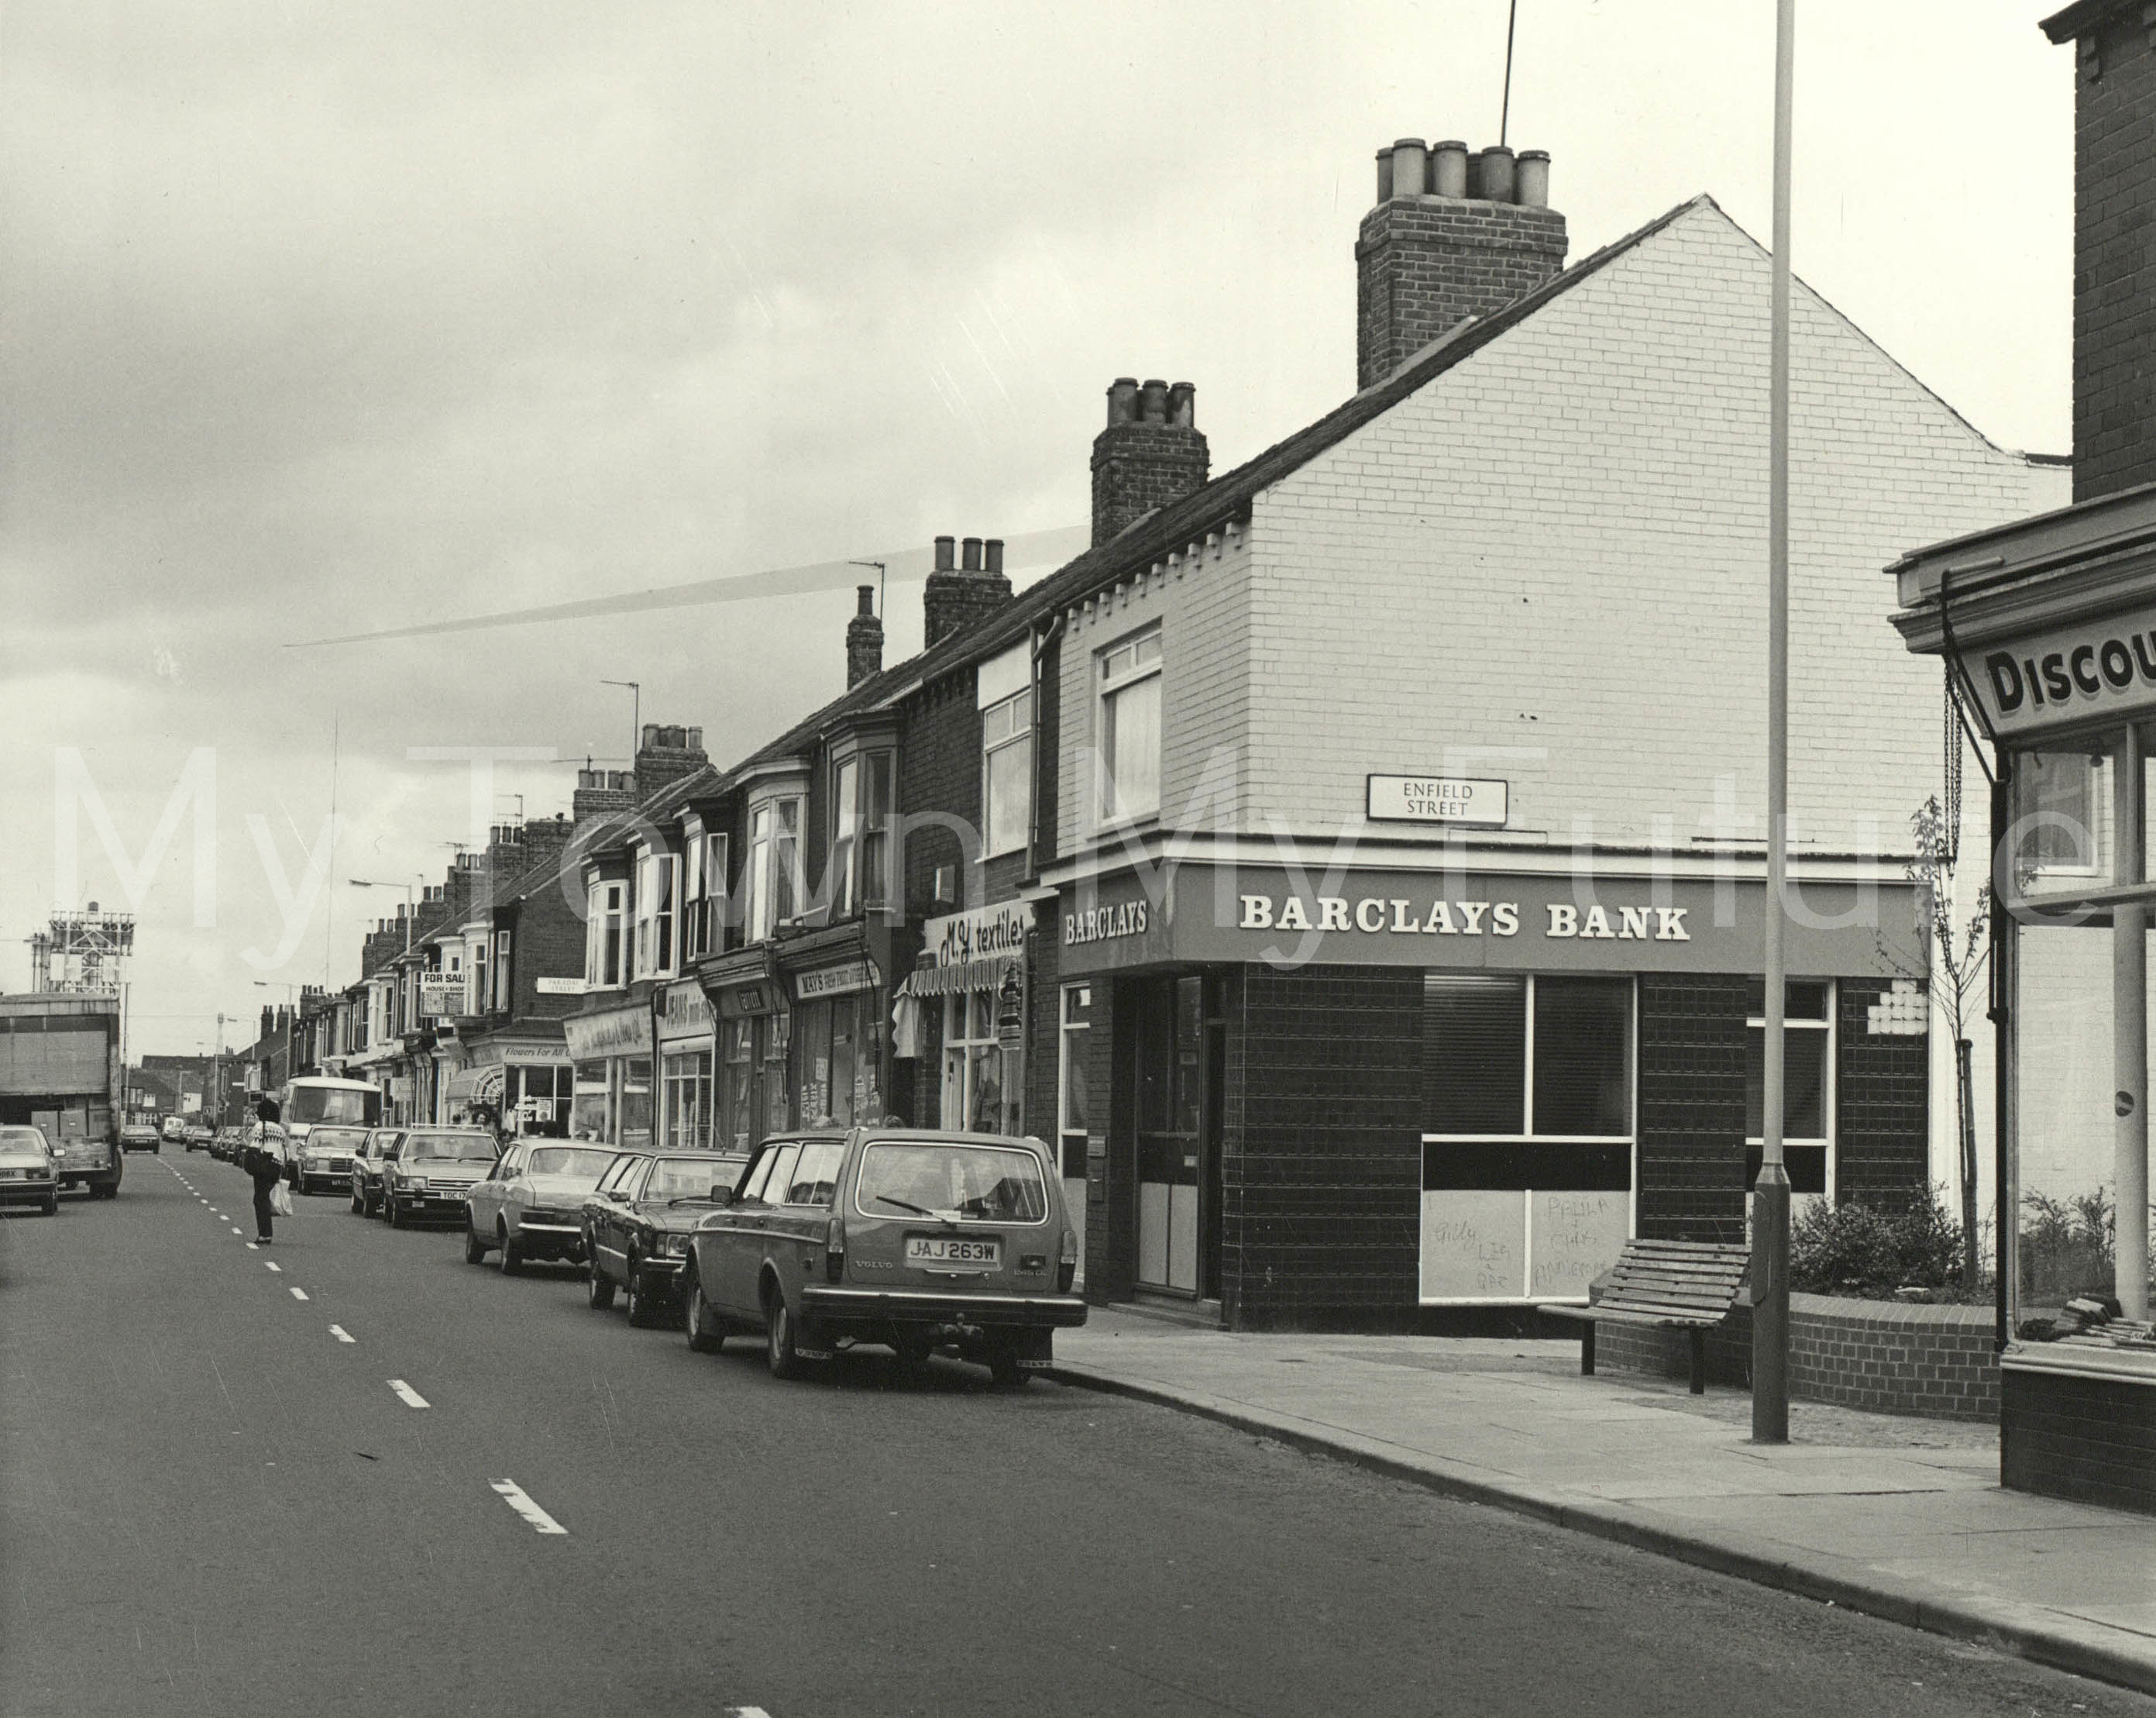 Parliament Road, Middlesbrough (1983)